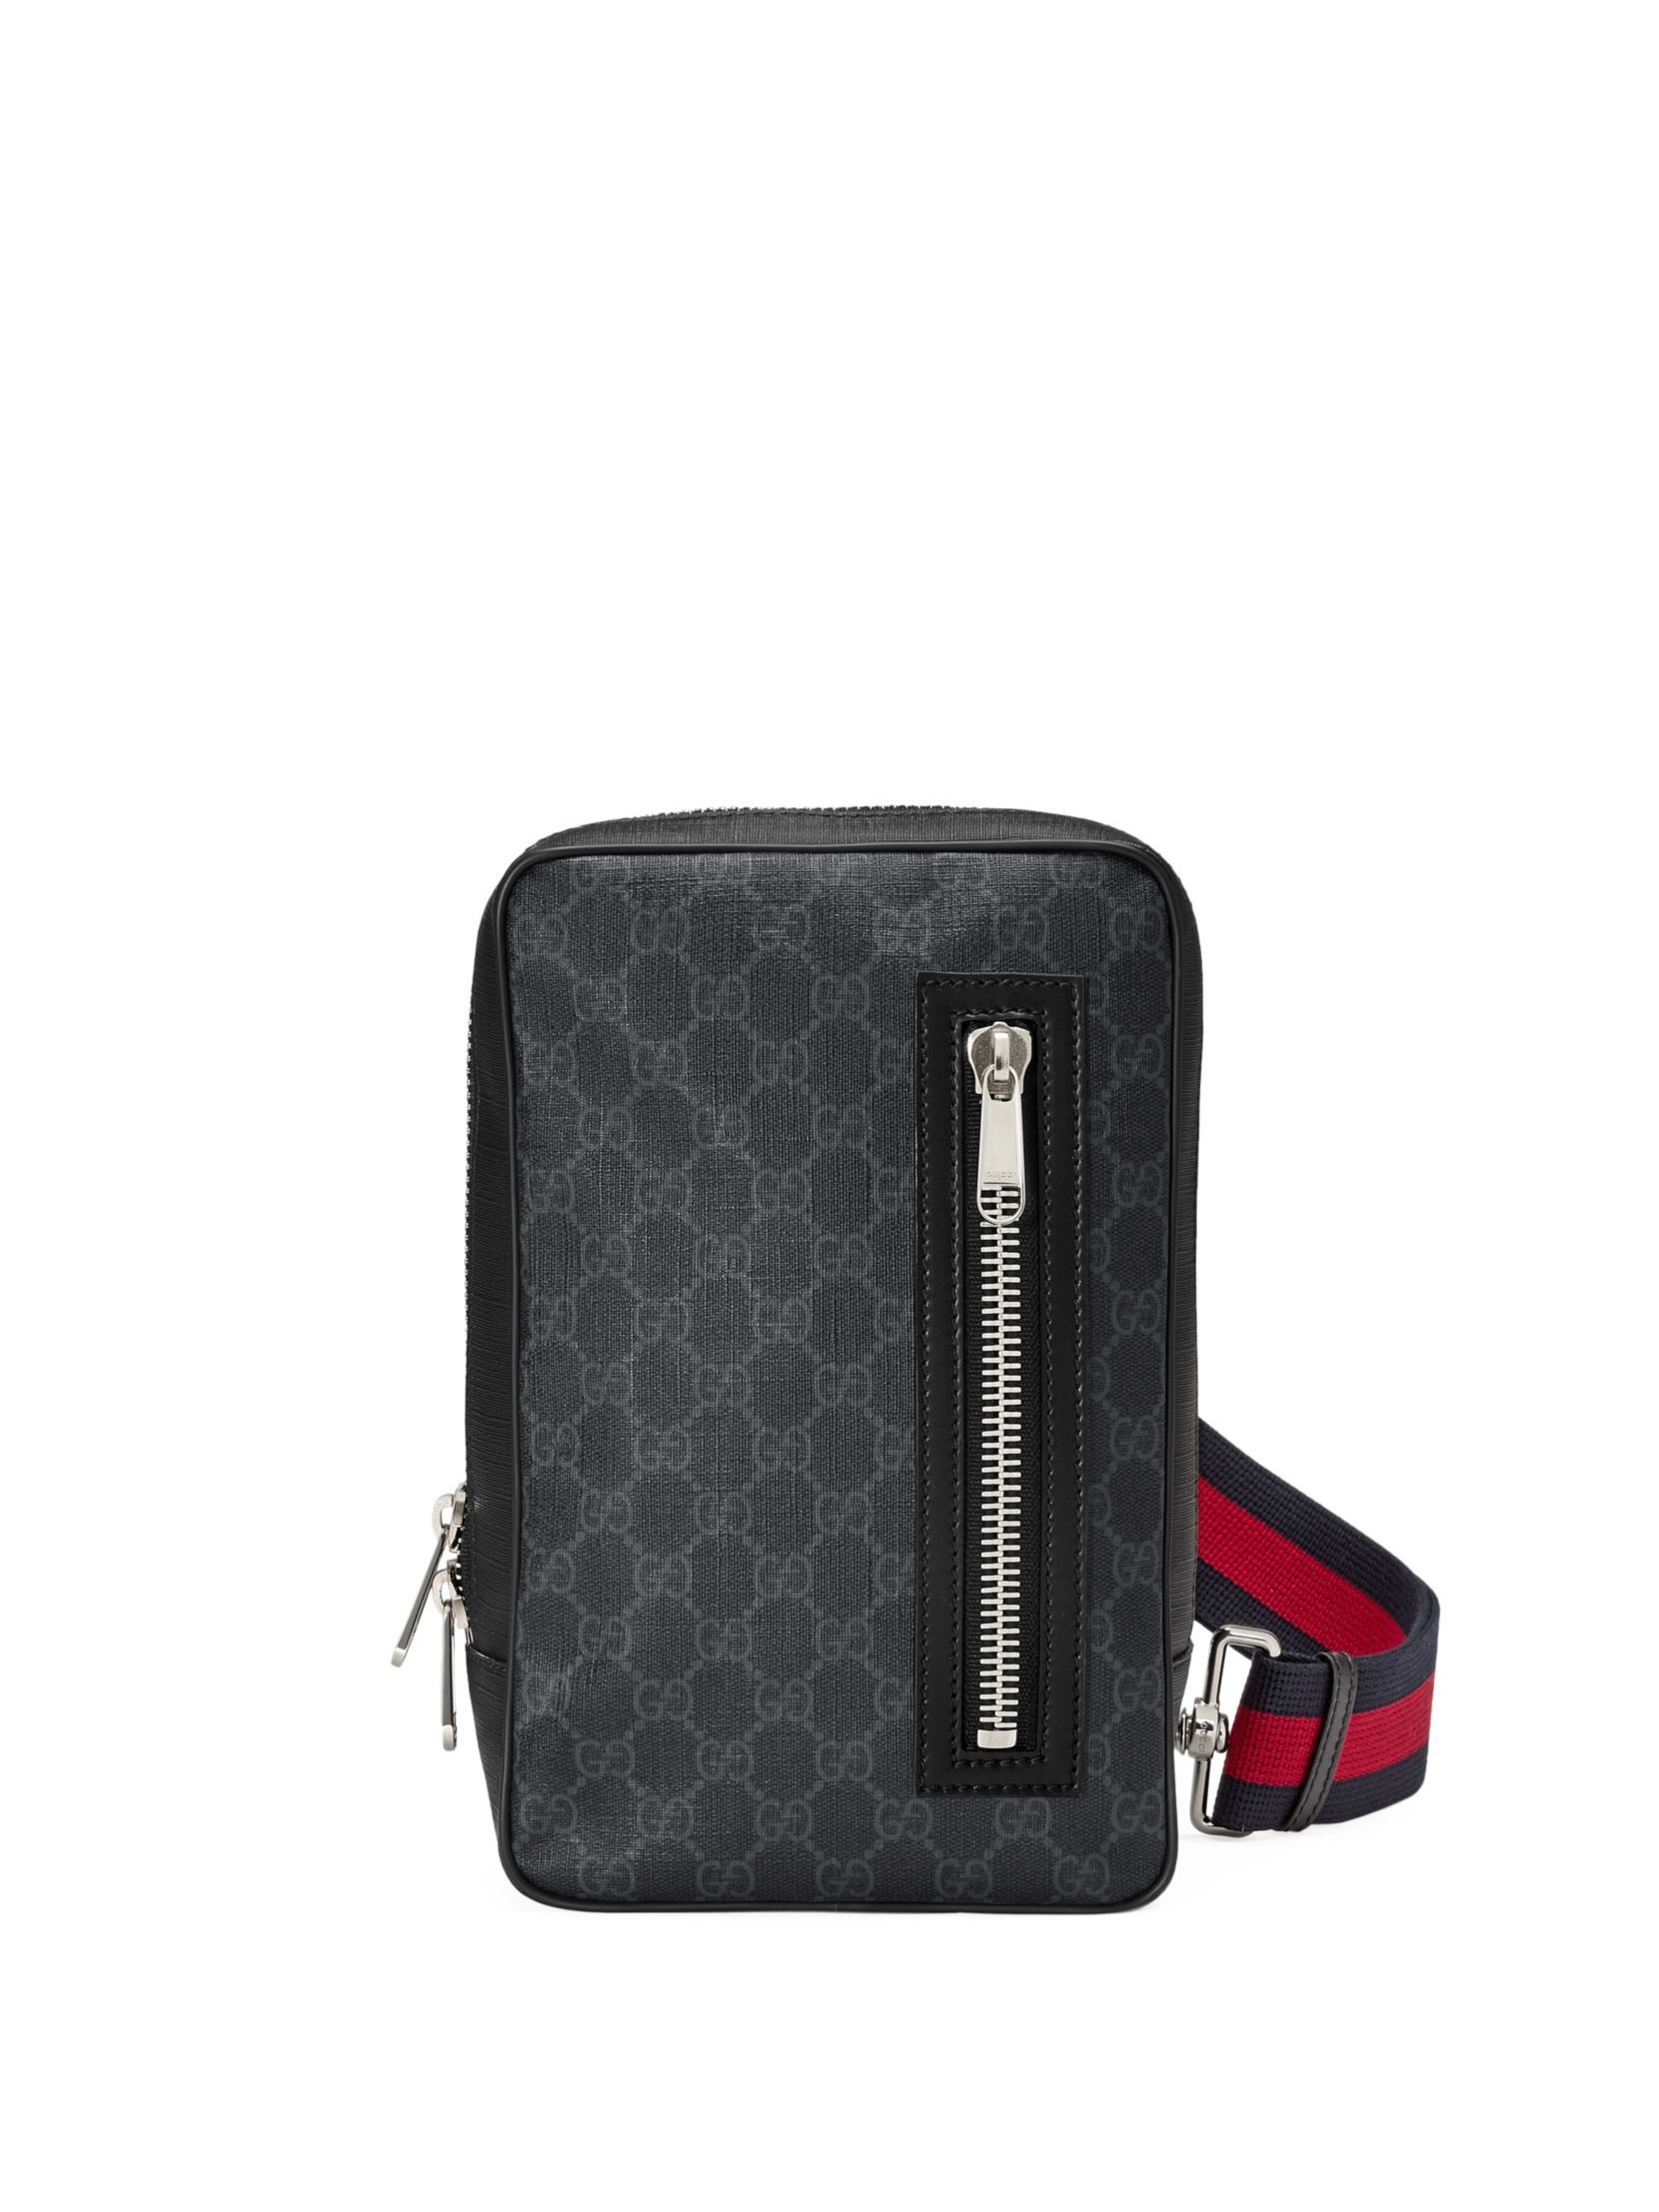 c8dc89382d051 Gucci GG Supreme Sling Backpack   Bags   Bags, Sling backpack, Backpacks